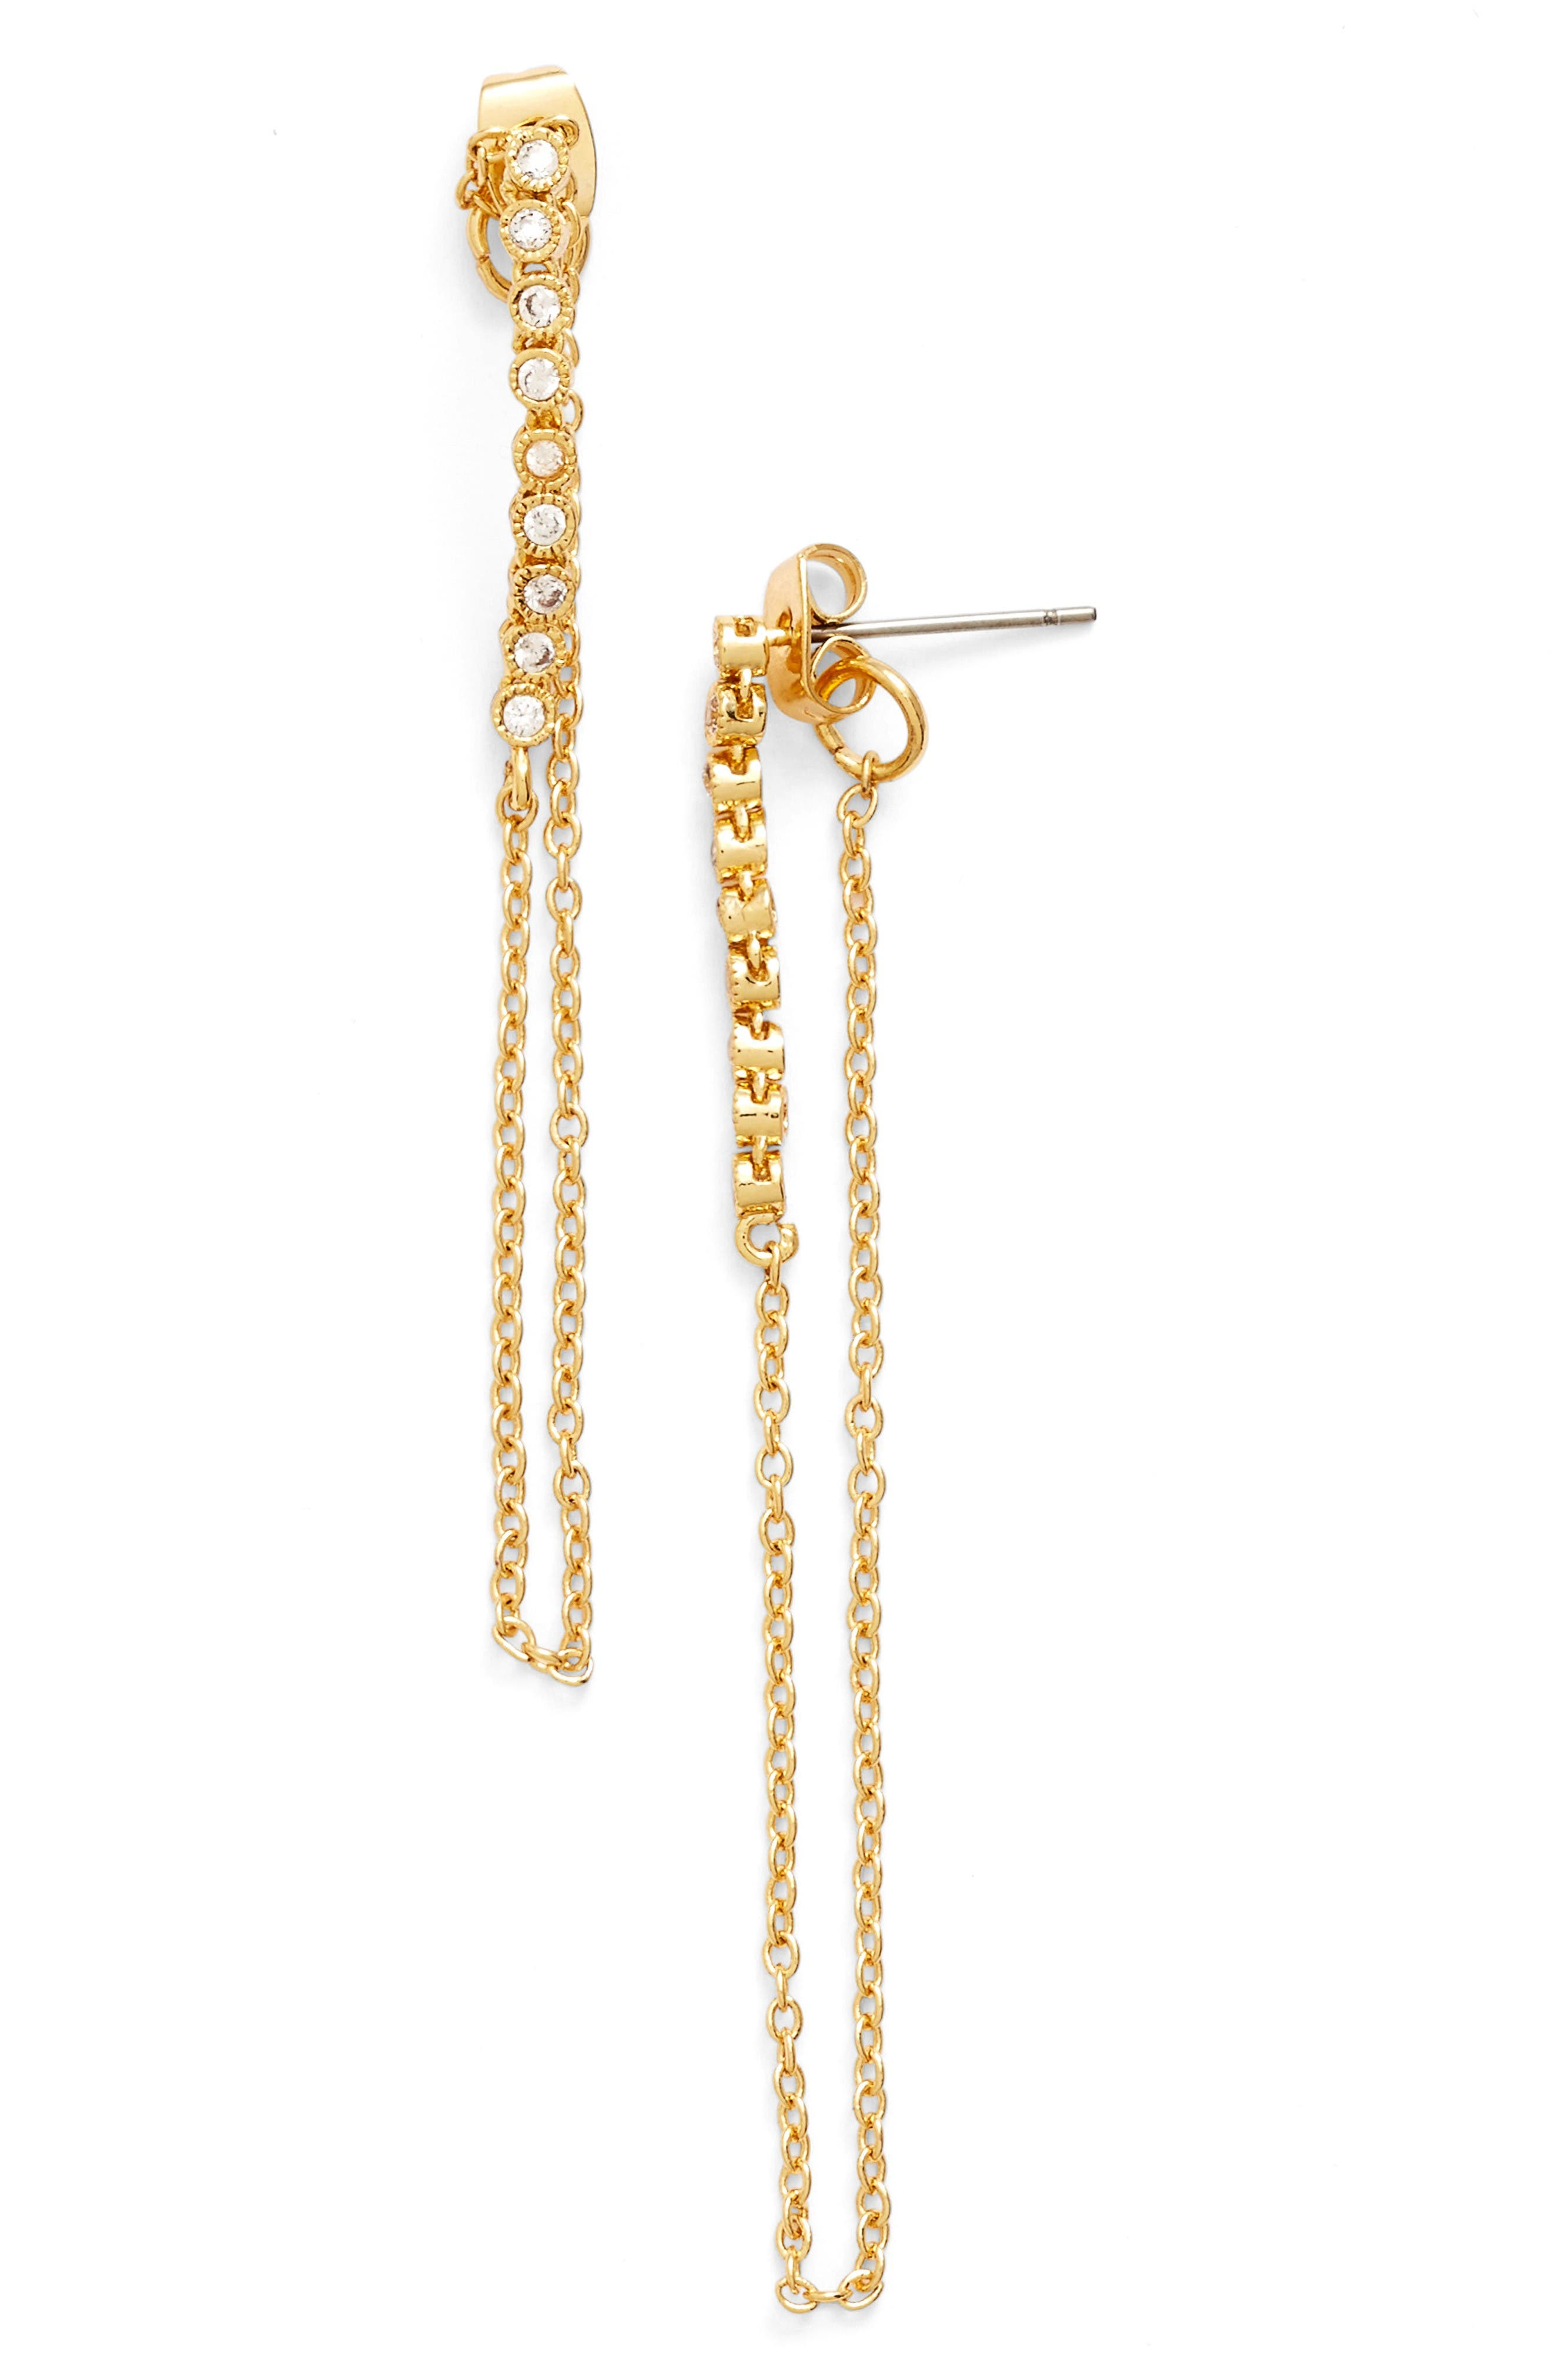 Crystal Chain Drop Earrings,                             Main thumbnail 1, color,                             Gold